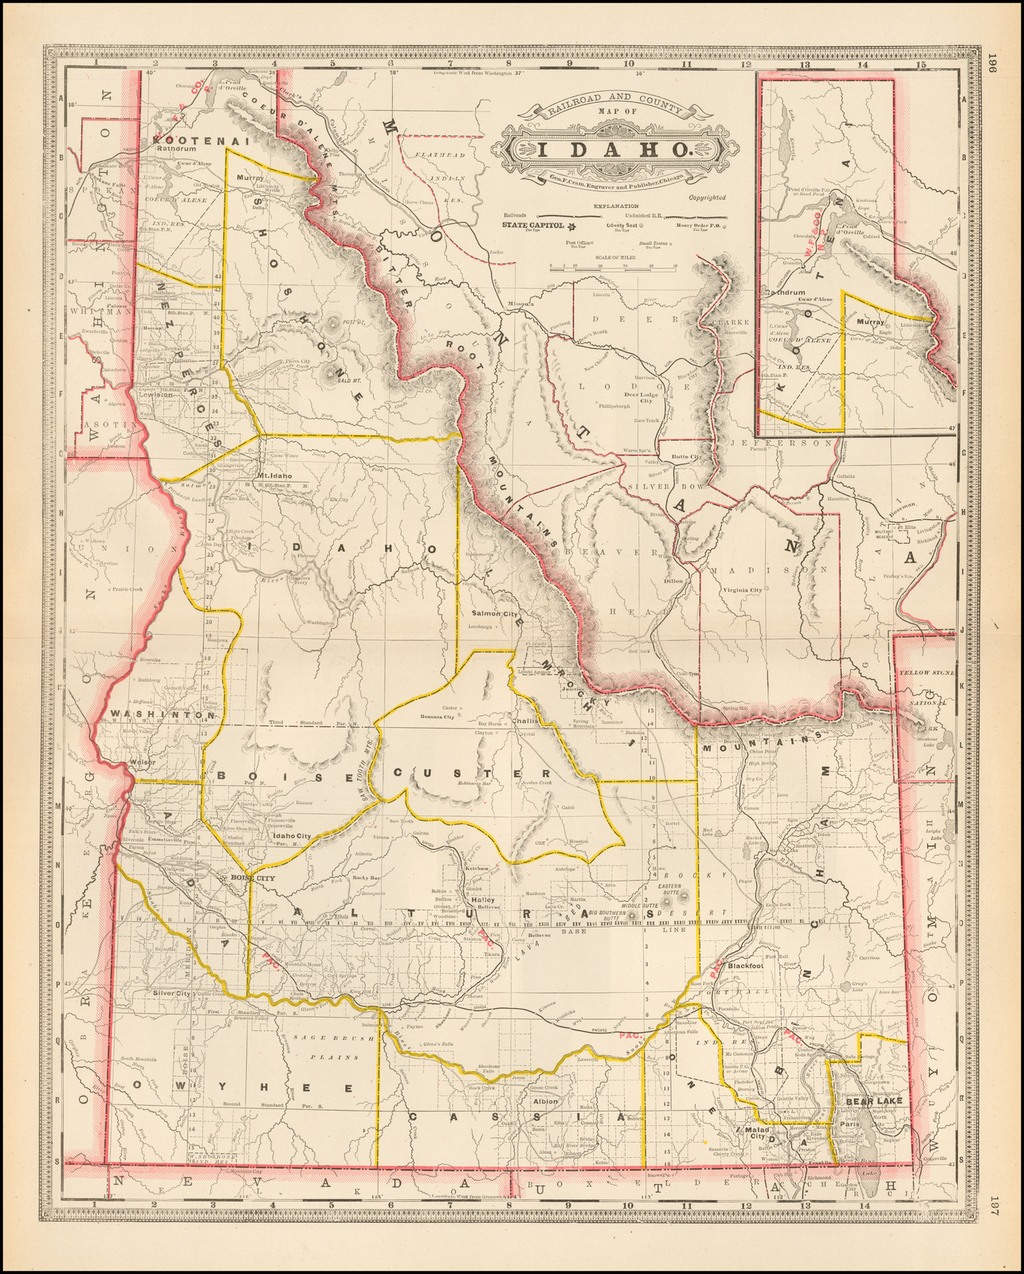 Railroad and County Map of Idaho By George F. Cram